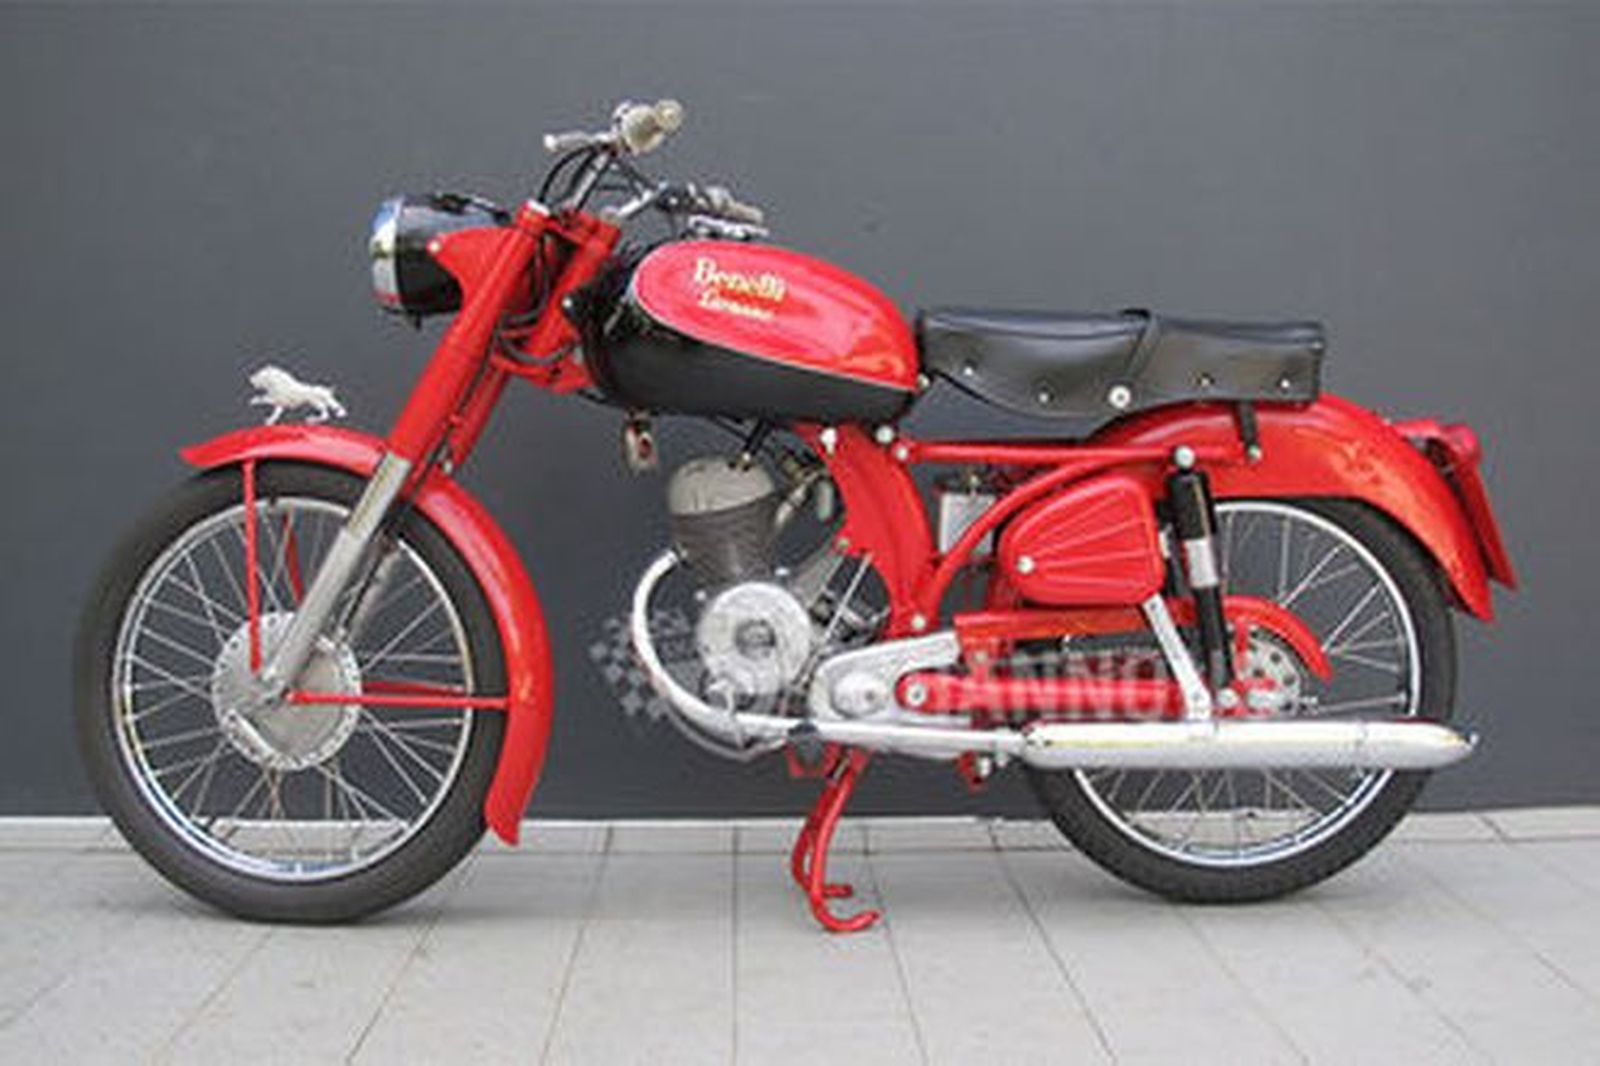 Benelli Leoncino 125cc Motorcycle Auctions Lot Ae Shannons